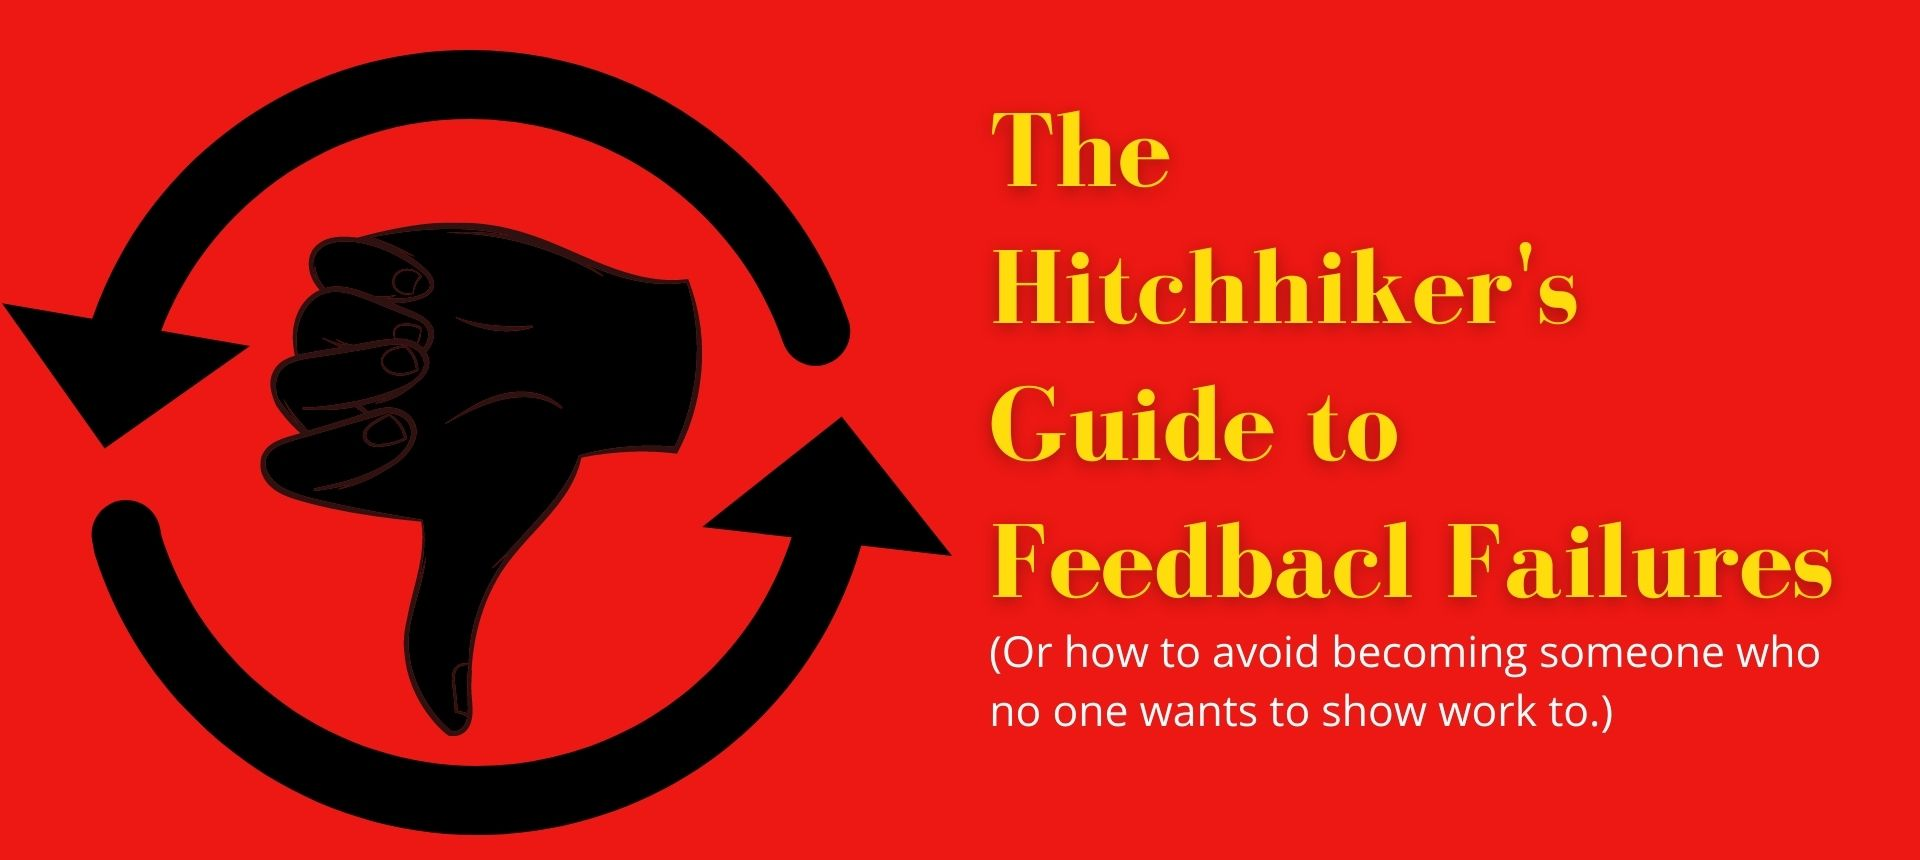 The Hitchhiker's Guide to Feedback Failures